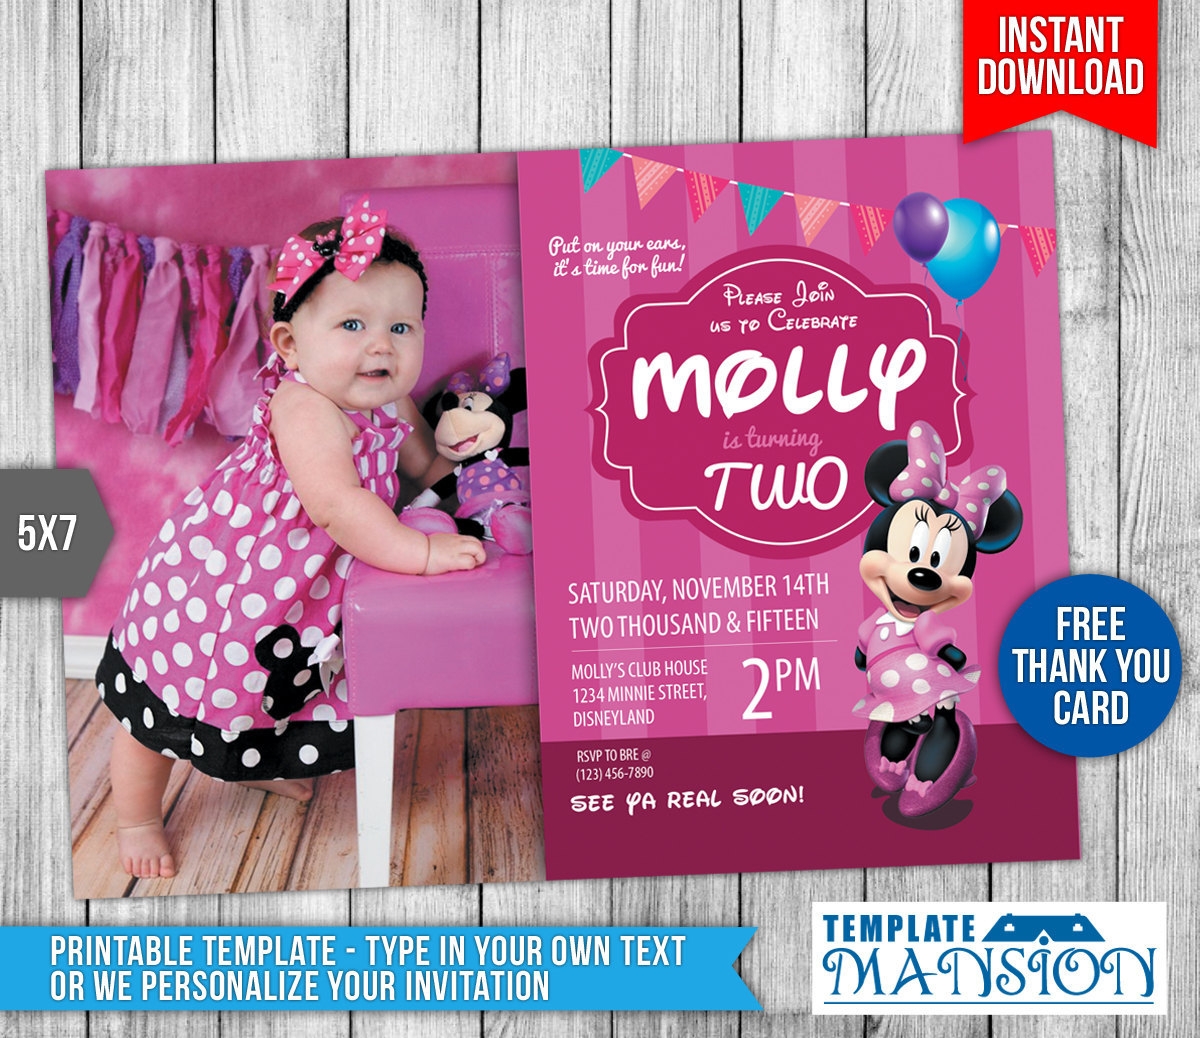 download birthday invitation templates